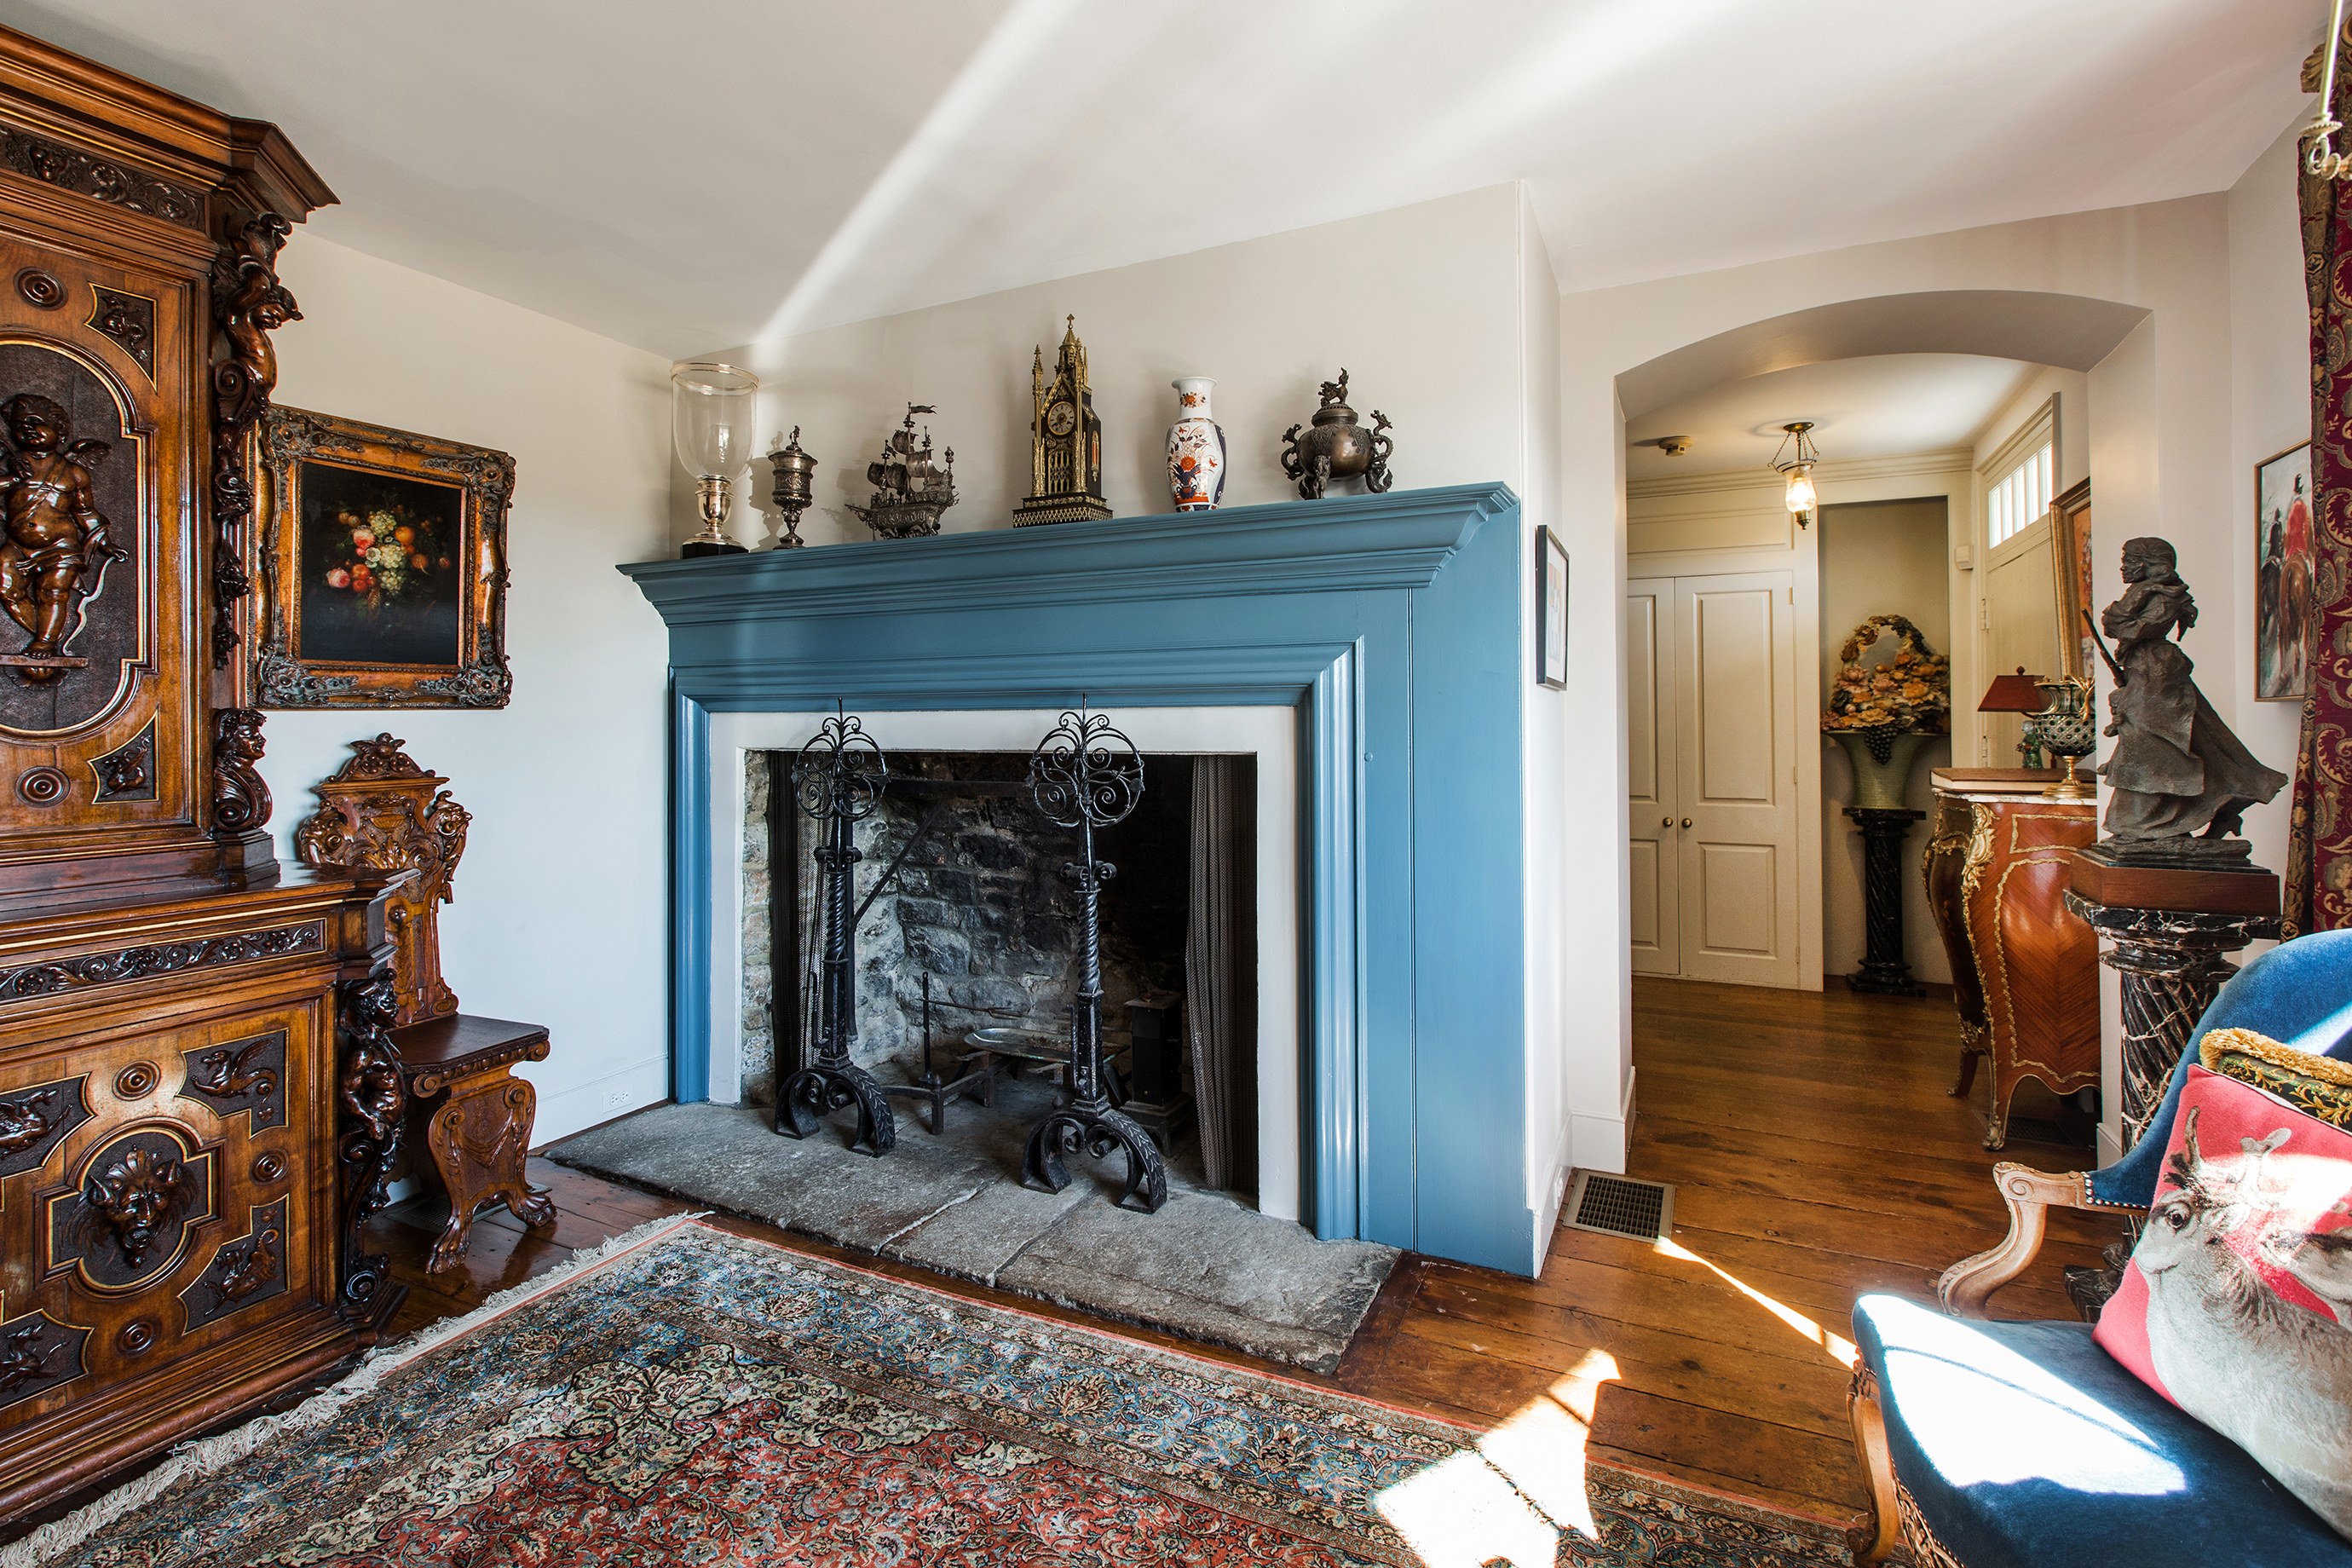 17th century estate in new hope on 75 acres asks 10m curbed philly